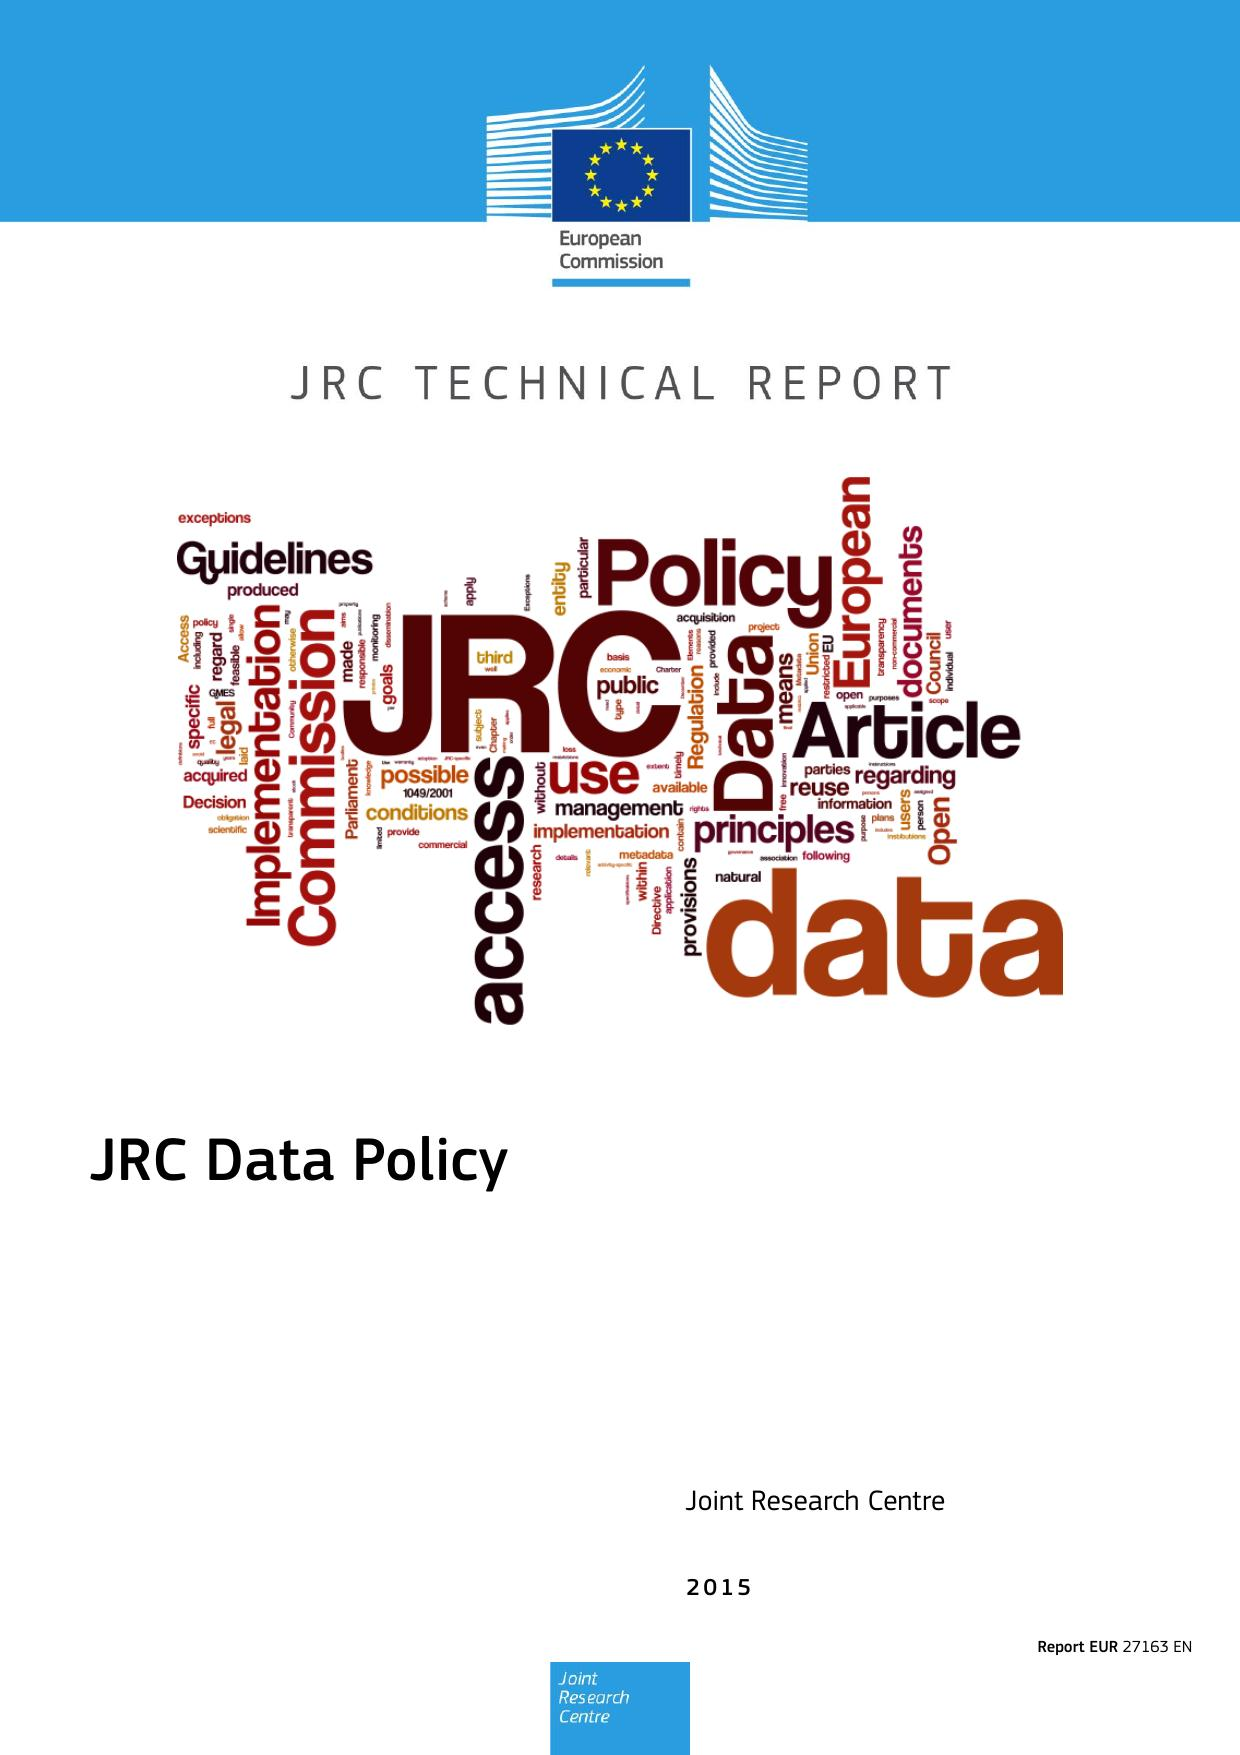 JRC Data Policy